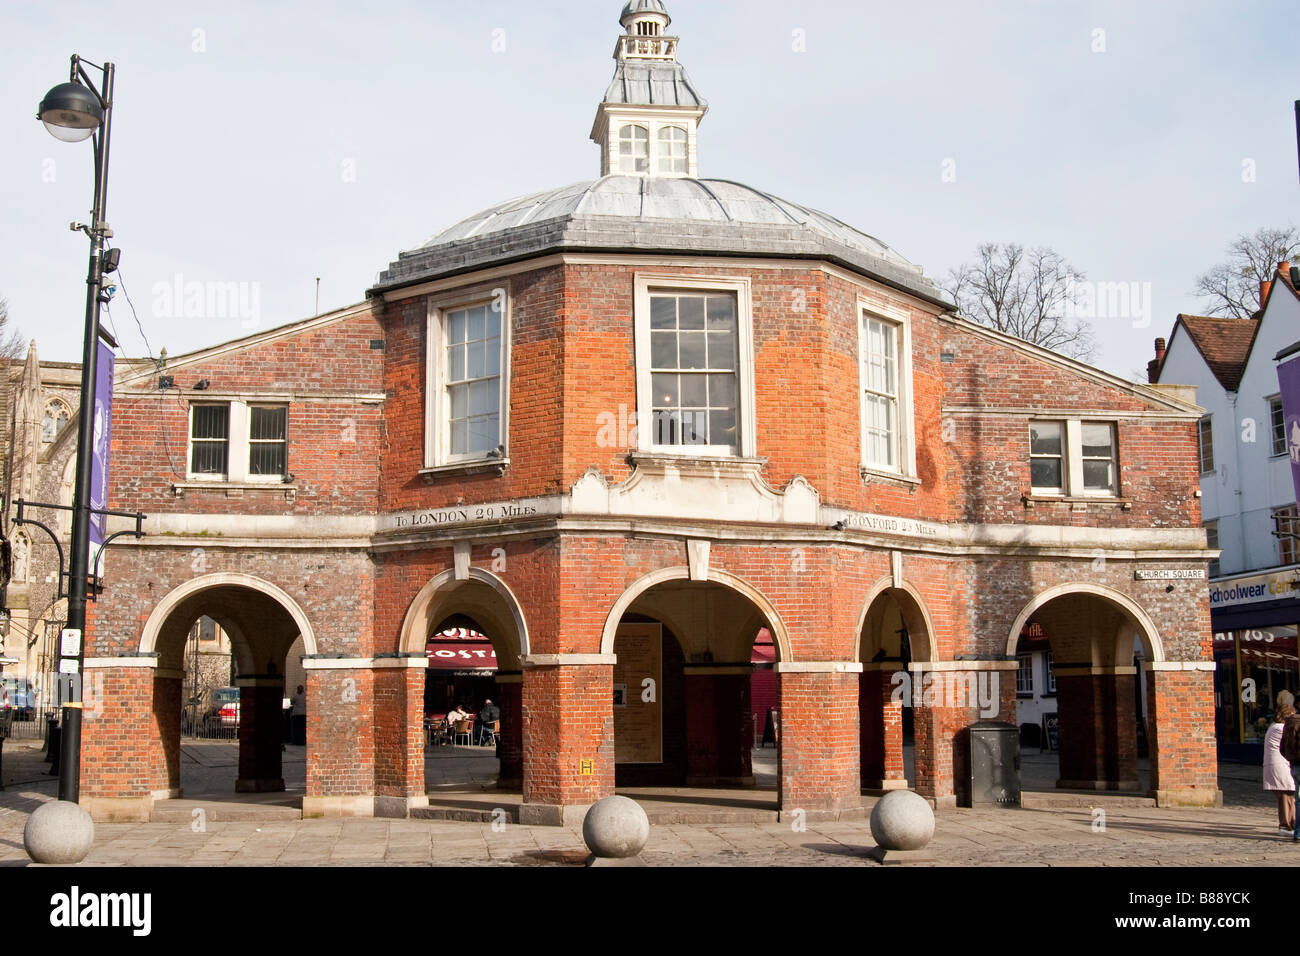 The historic corn market in the centre of High wycombe - Stock Image